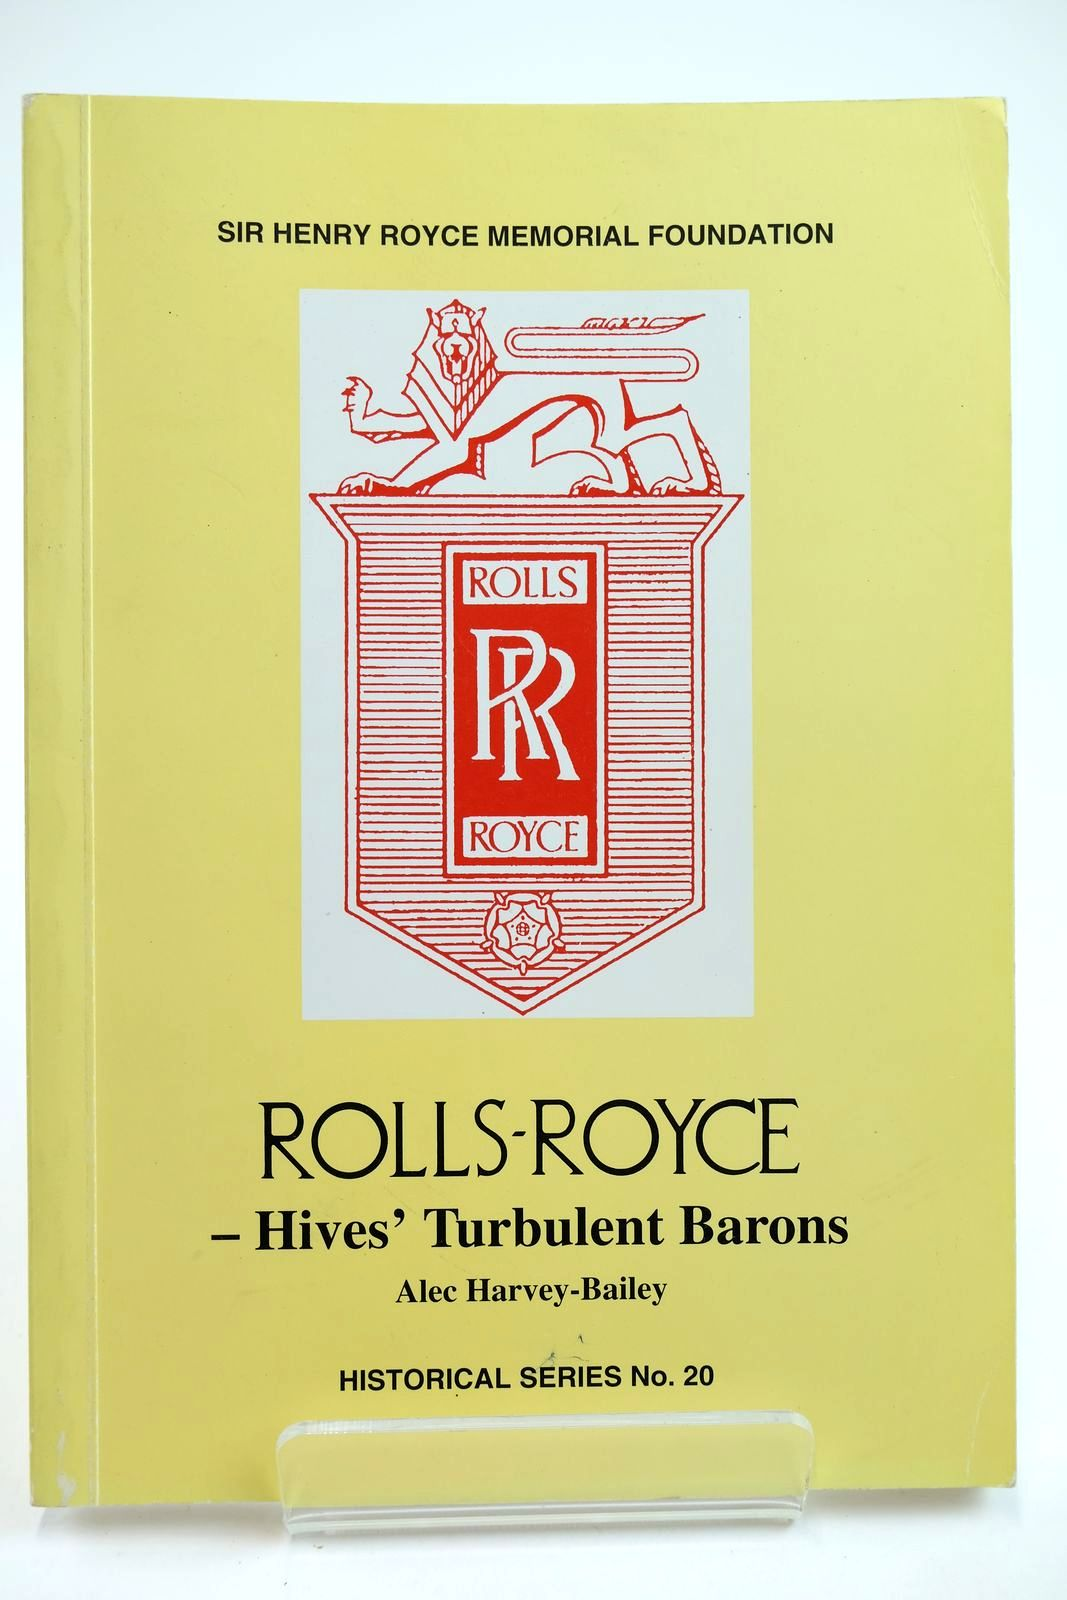 Photo of ROLLS-ROYCE HIVES' TURBULENT BARONS written by Harvey-Bailey, Alec published by Sir Henry Royce Memorial Foundation (STOCK CODE: 2132243)  for sale by Stella & Rose's Books